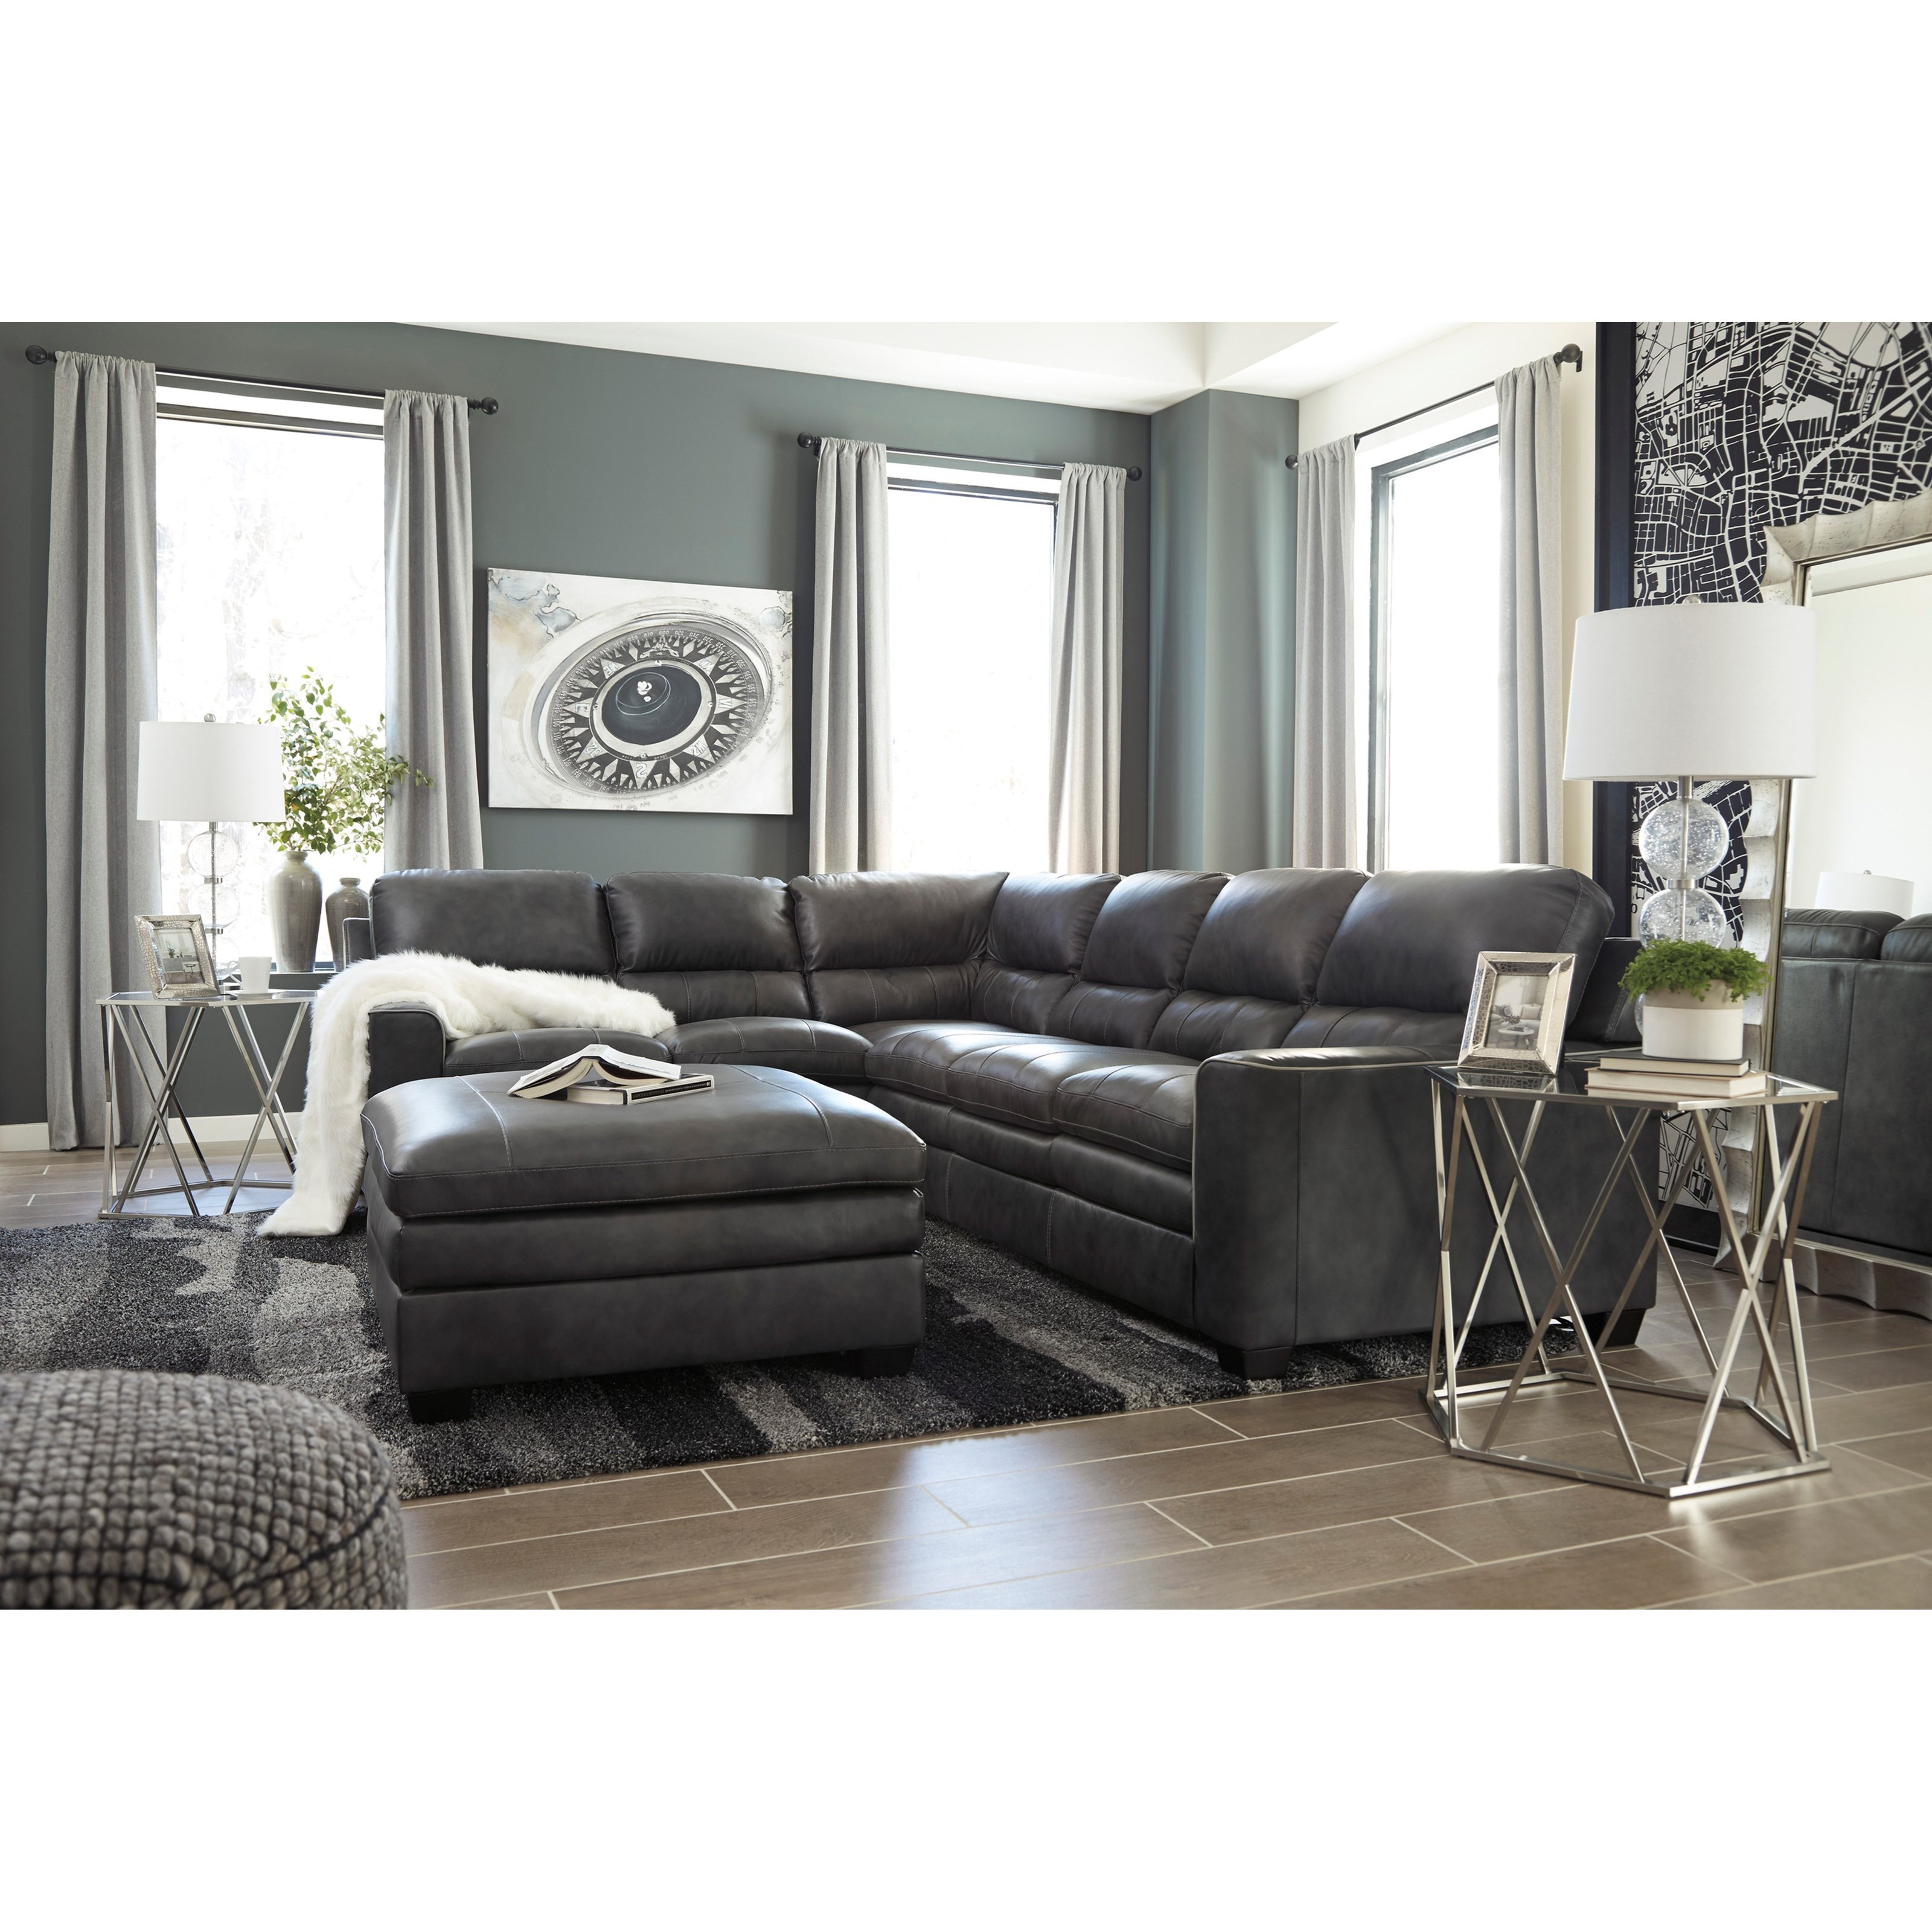 Signature design by ashley gleason stationary living room for Living room furniture groups